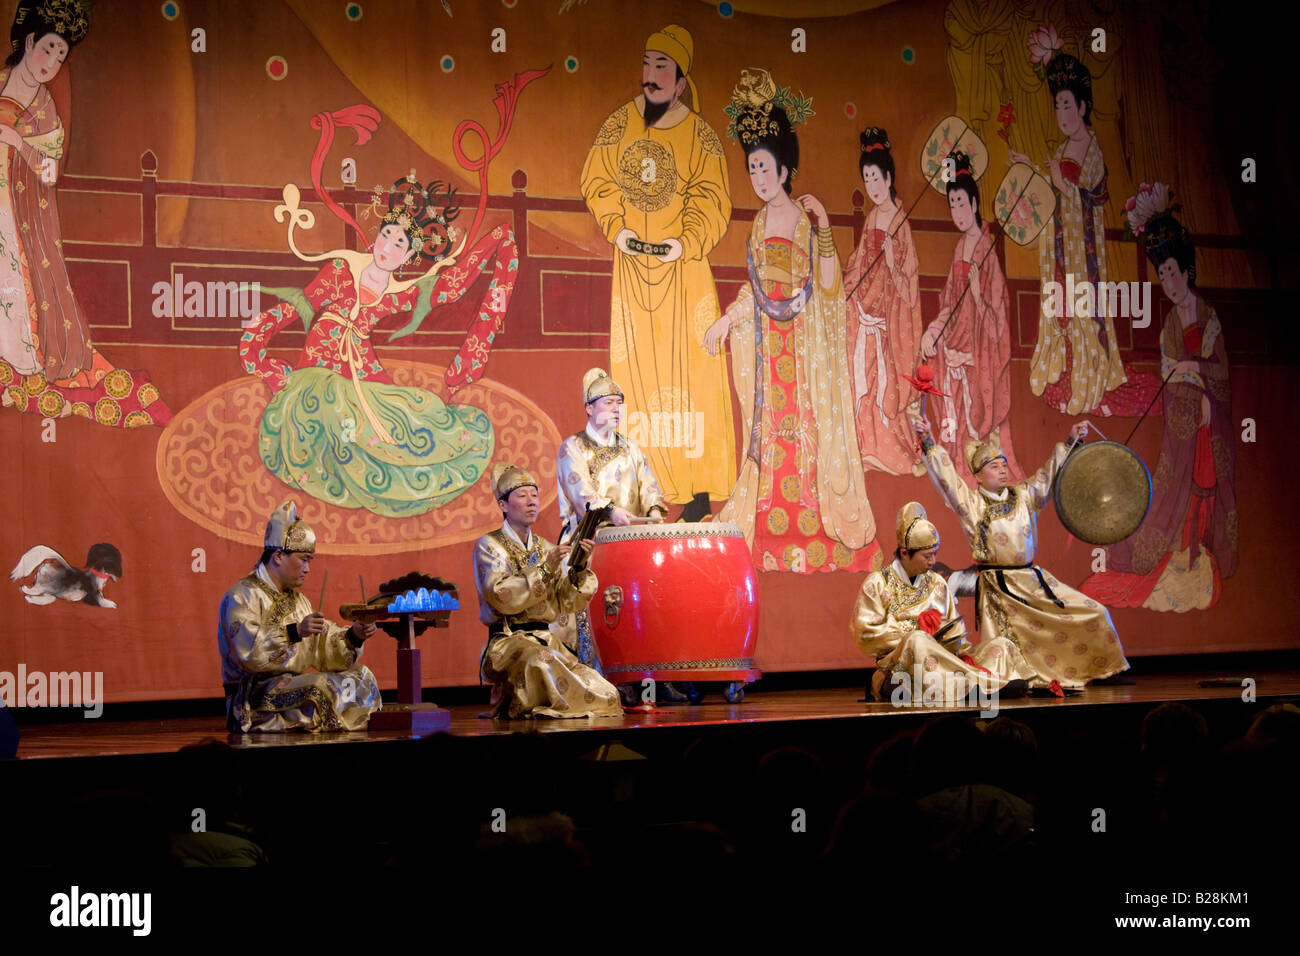 Musicians performing in the Tang Dance Show Shaanxi Grand Opera House Xian China - Stock Image